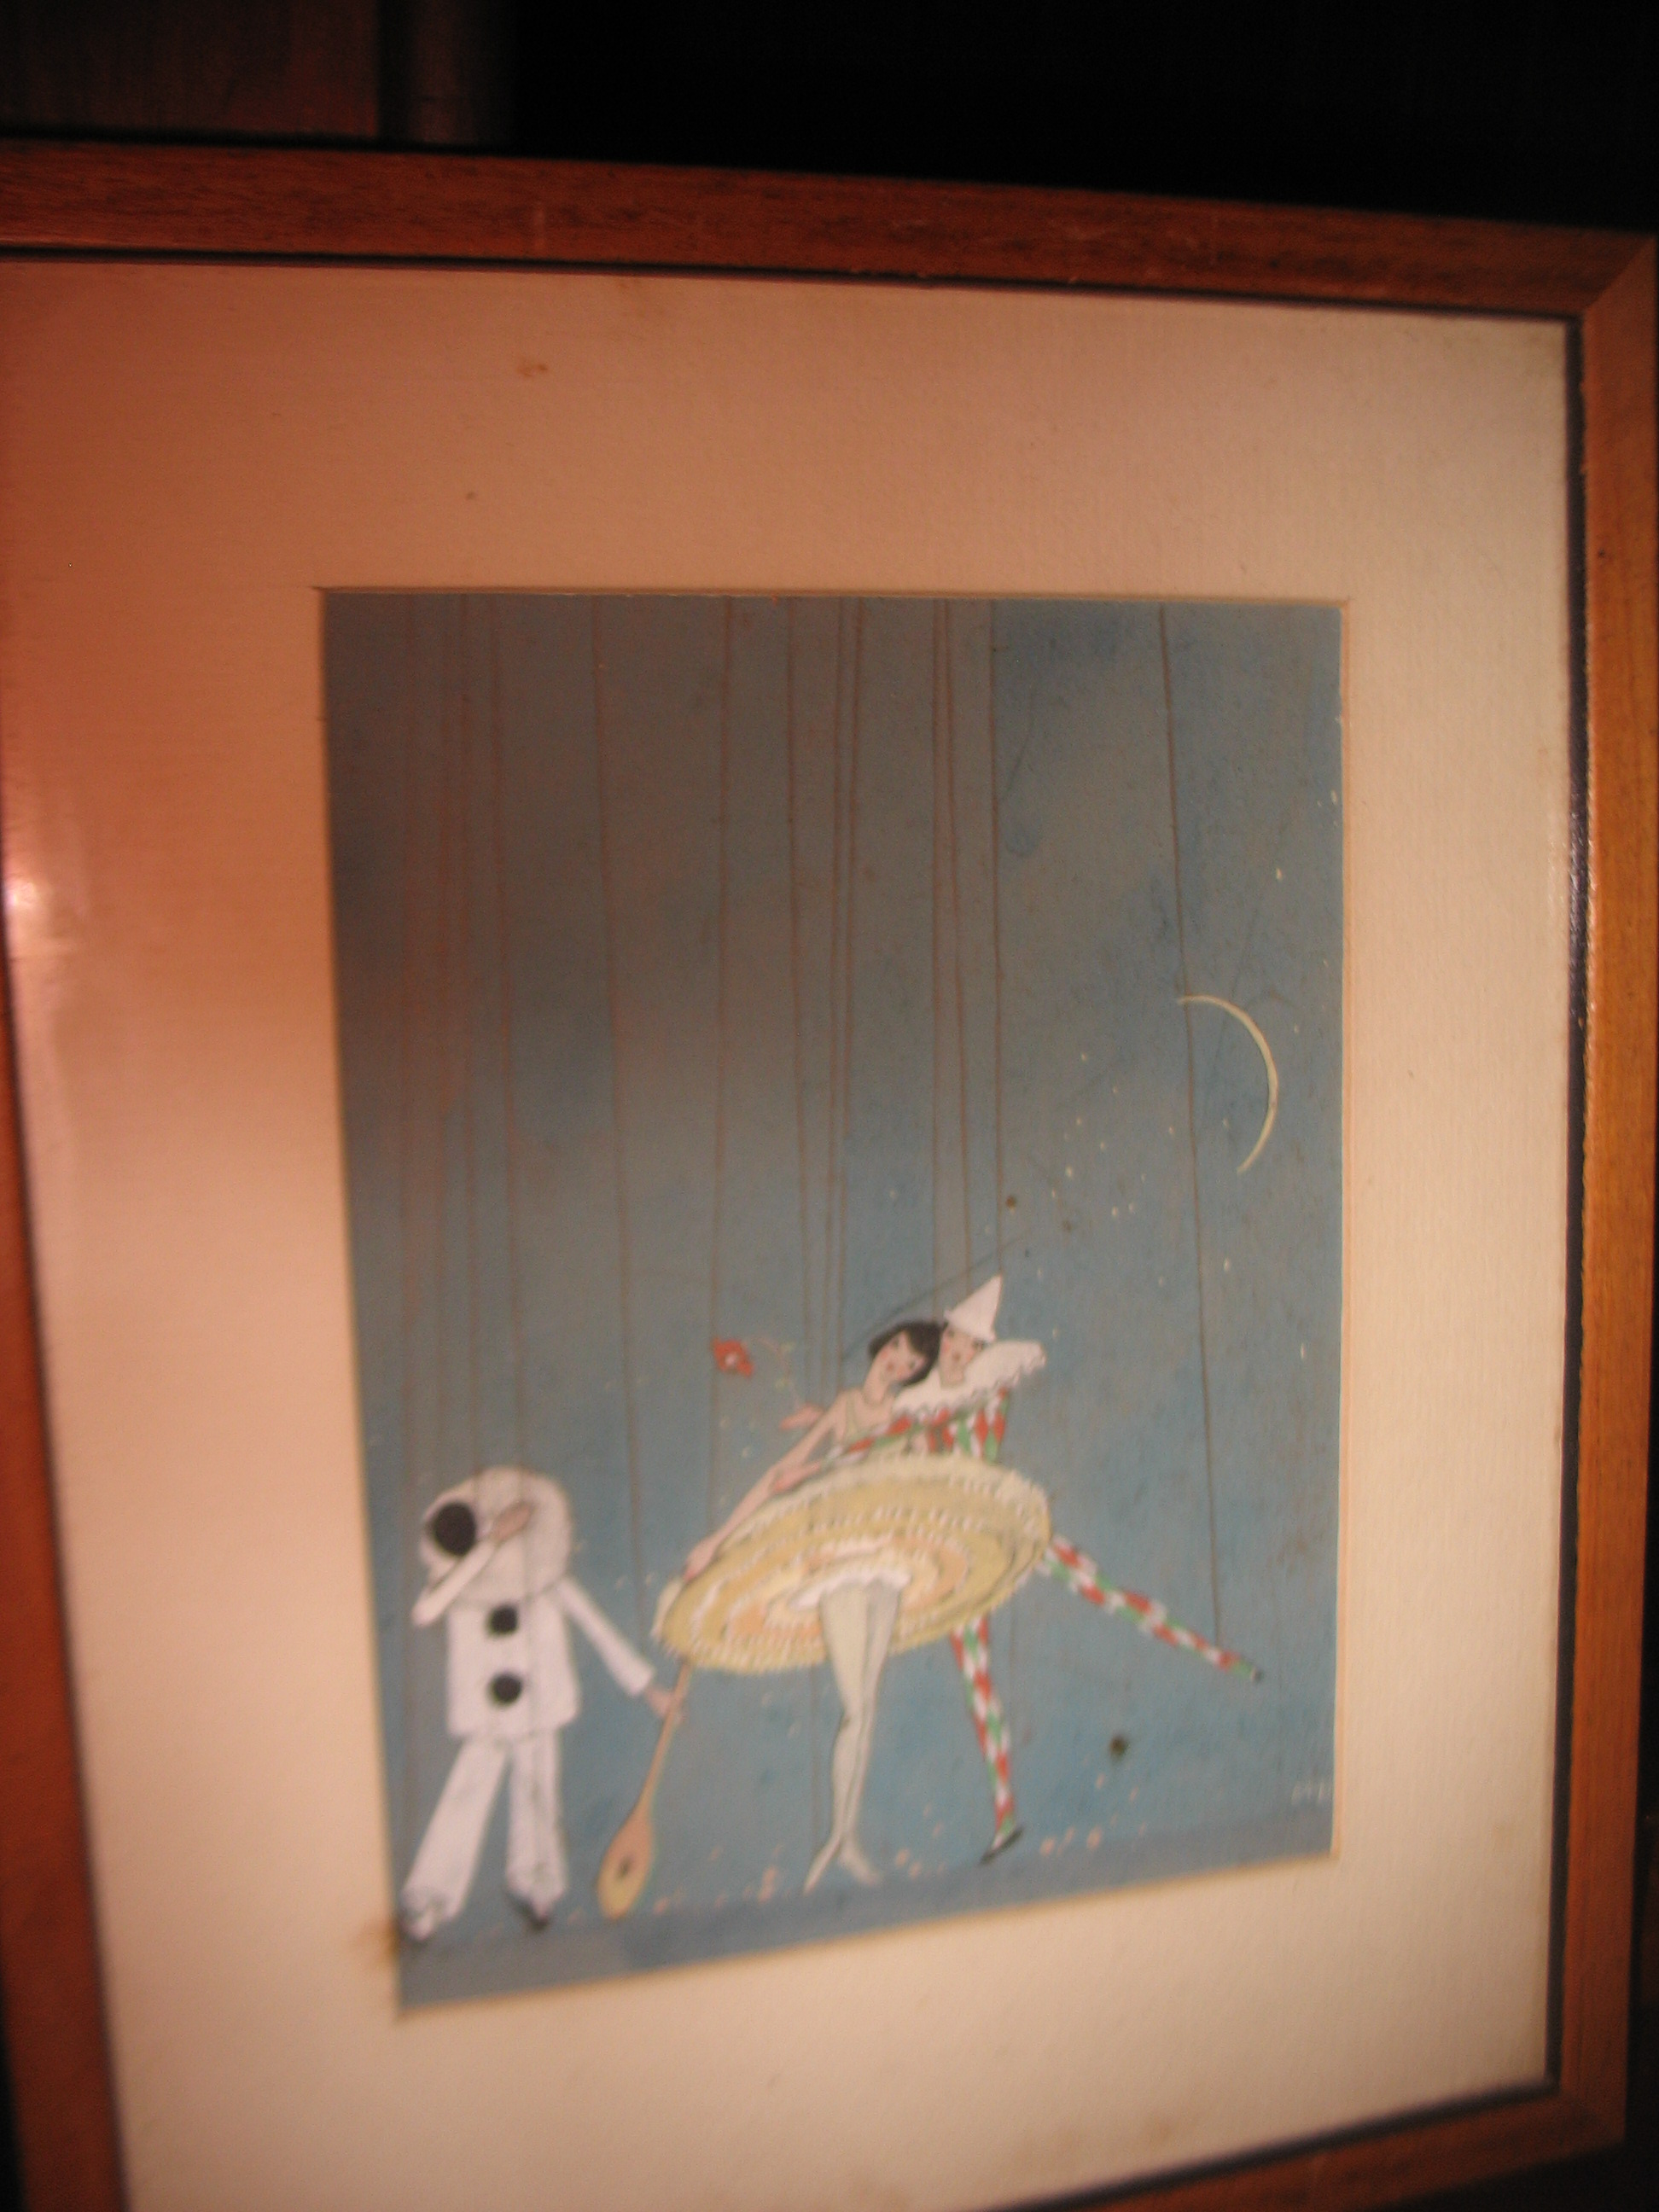 """This charming little watercolor by the artist Maurice Day was done in Damariscotta, Maine where Mr. Day was born in l892 and died in 1983 at the age of 90. I bought directly from the artist after a wonderful visit with him and have enjoyed it for many years. He is best known for creating """"Bambi"""" and many of the adorable characters in the classic movie by Walt Disney. It measures 9 inches X 11 inches and is in the original frame as I bought it from Mr. Day."""